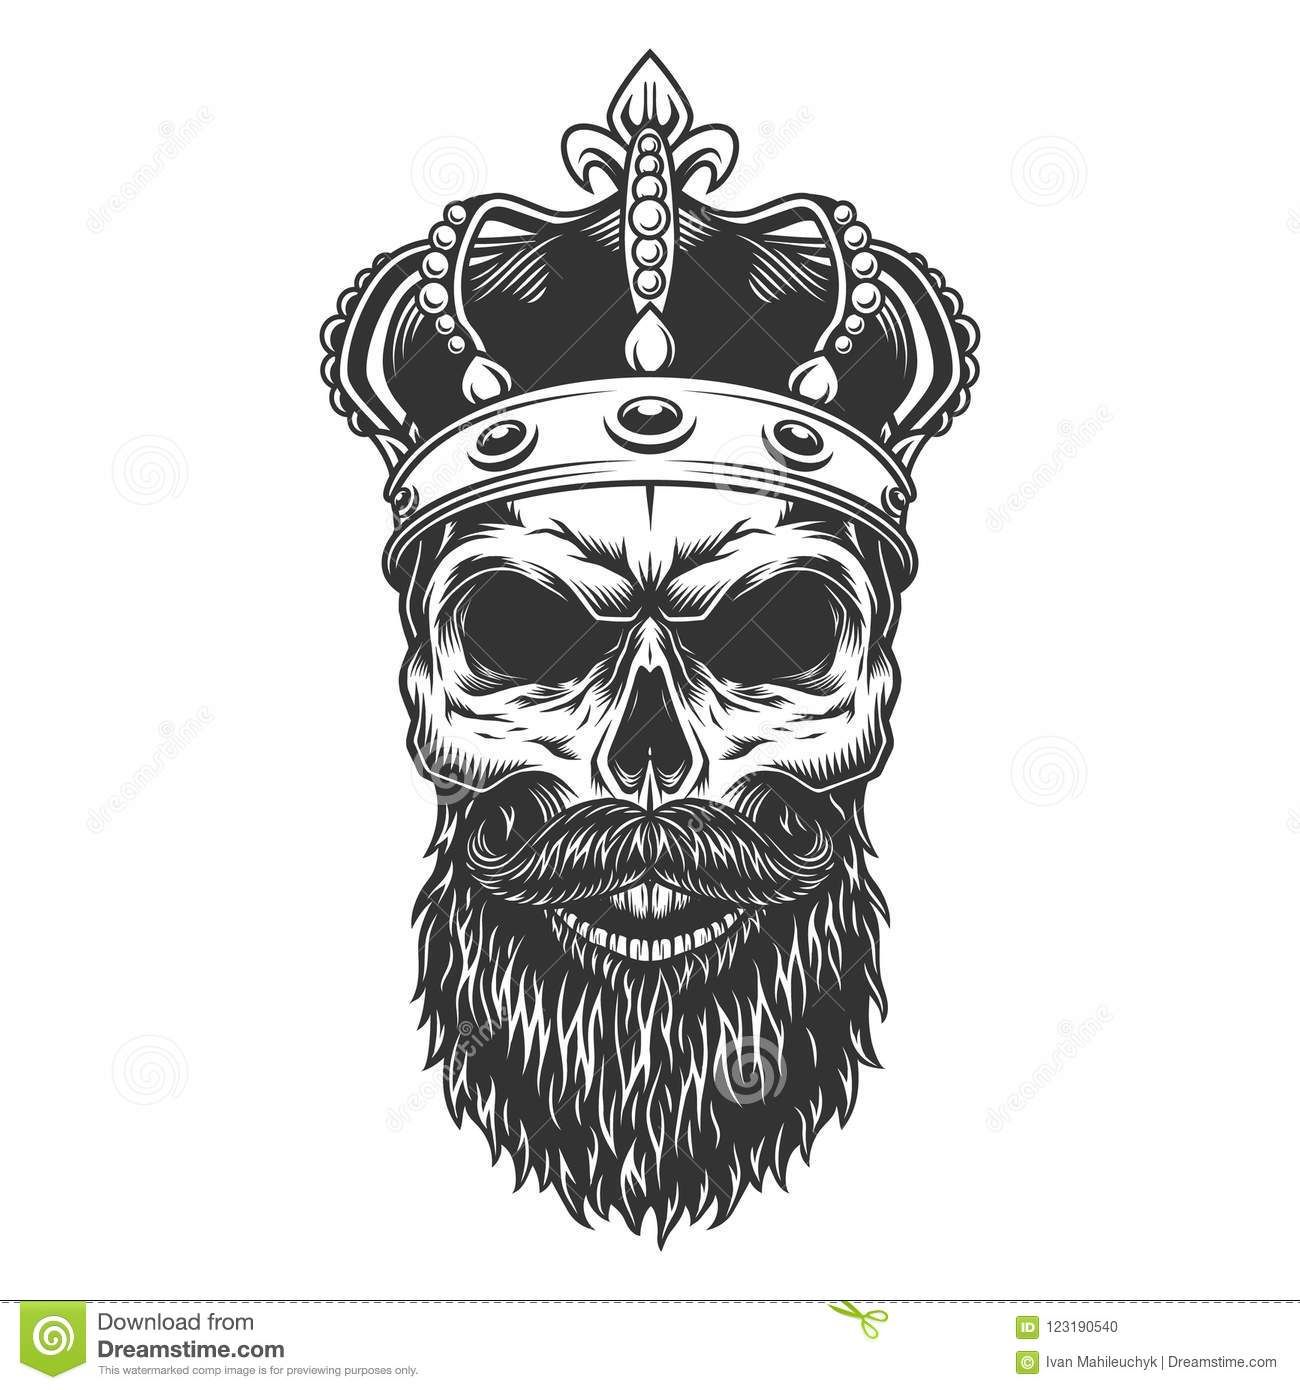 Skull With Beard In The Crown Vector Illustration